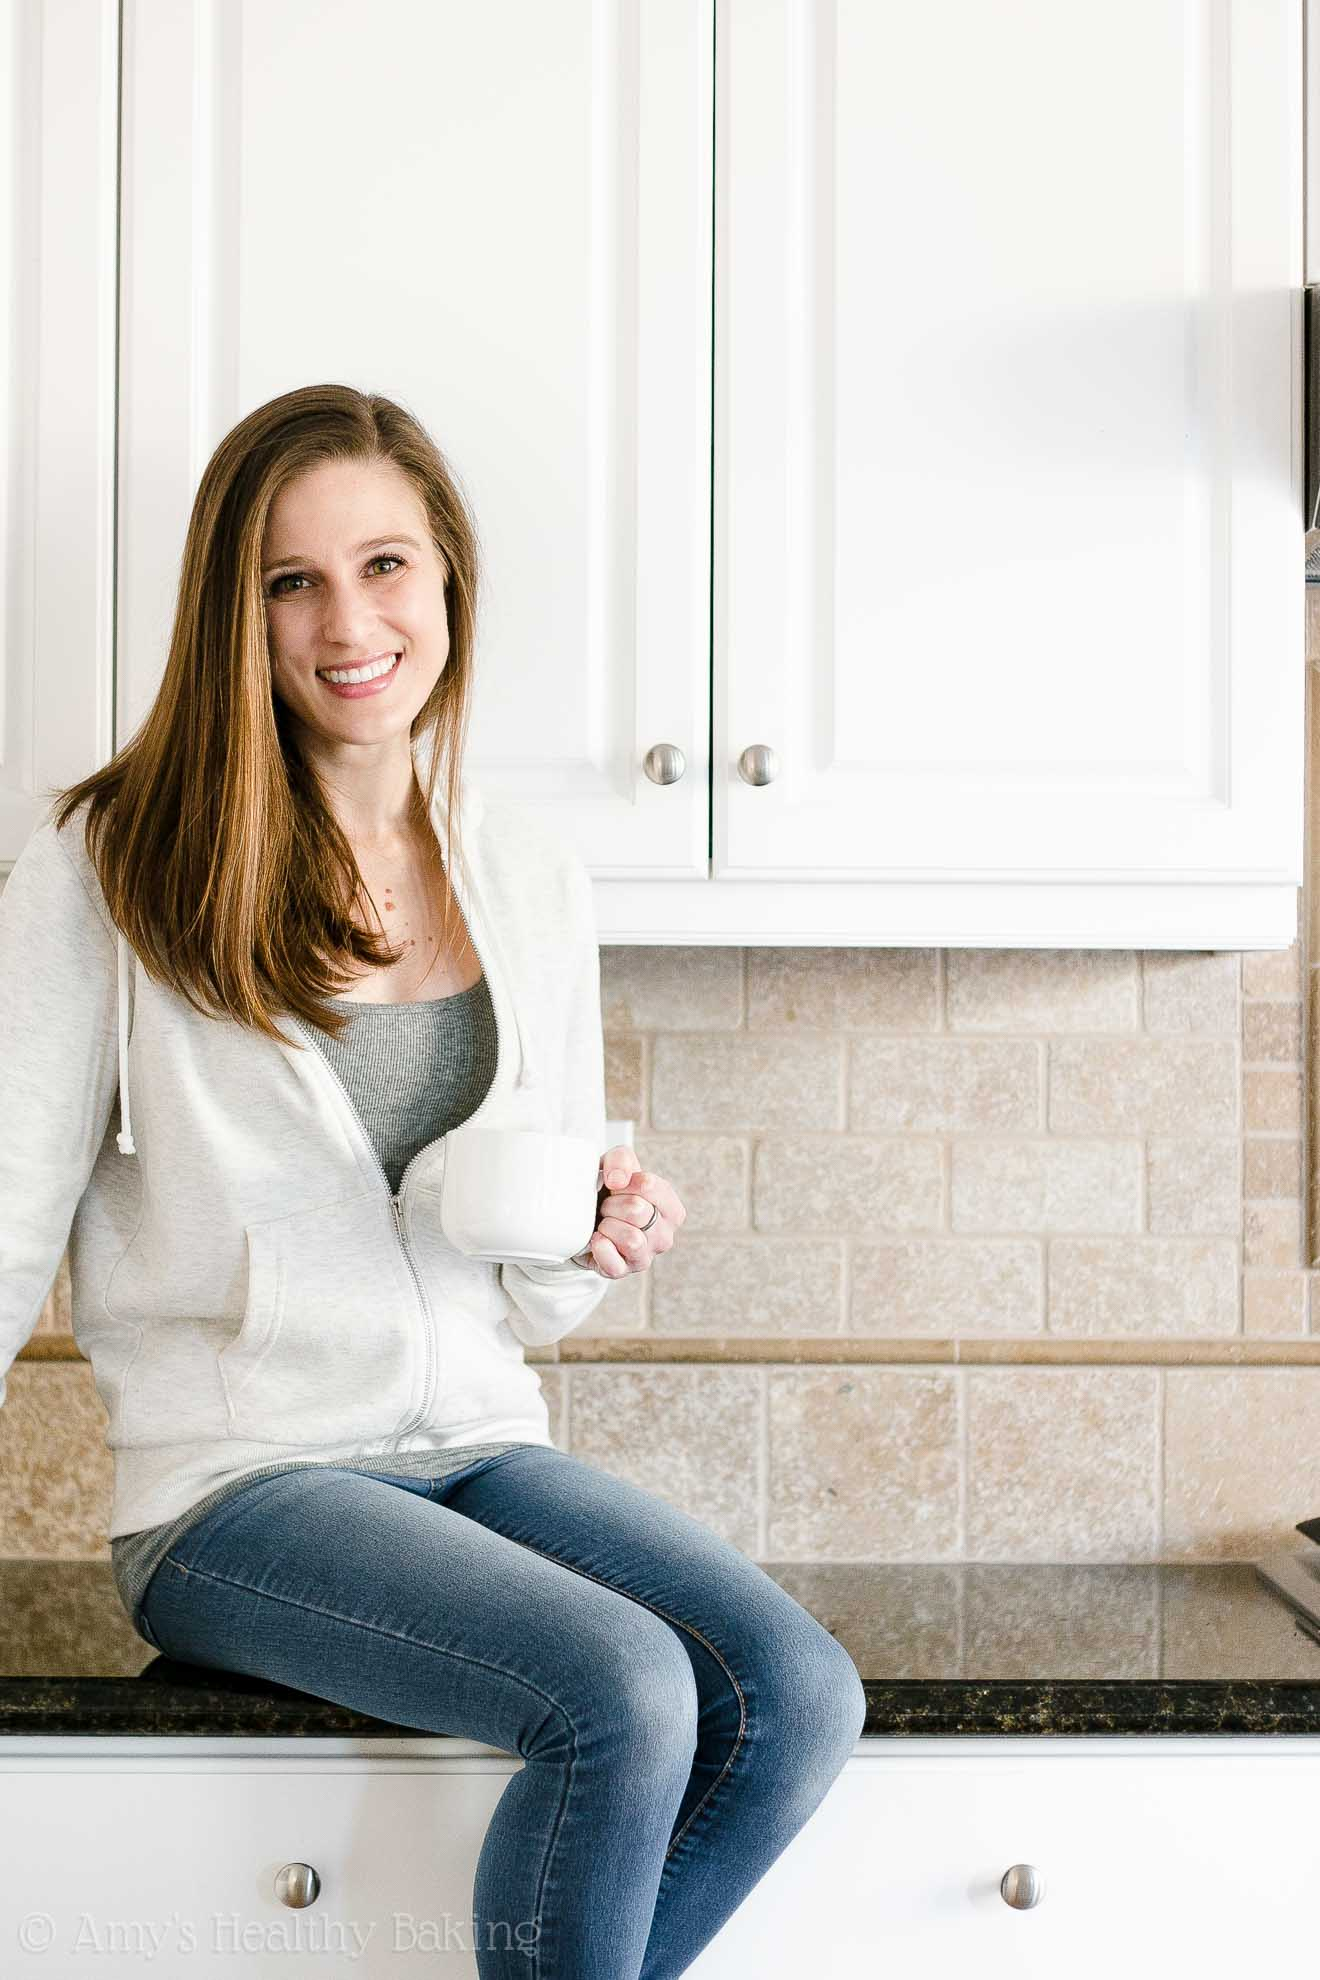 Amy Atherton from Amy's Healthy Baking drinking coffee & sitting on the kitchen counter